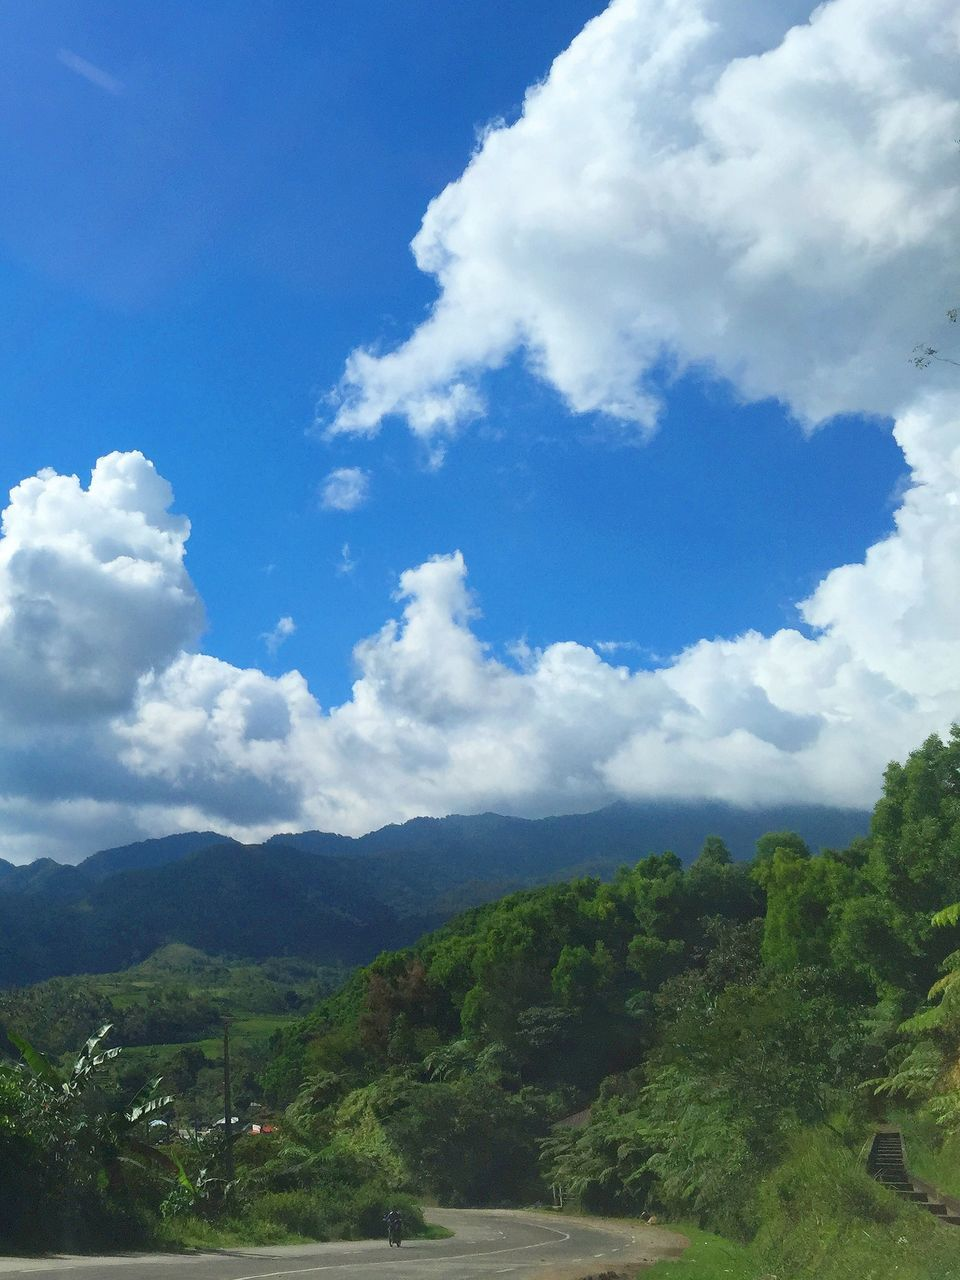 sky, cloud - sky, day, beauty in nature, no people, nature, mountain, outdoors, scenics, landscape, tranquility, tree